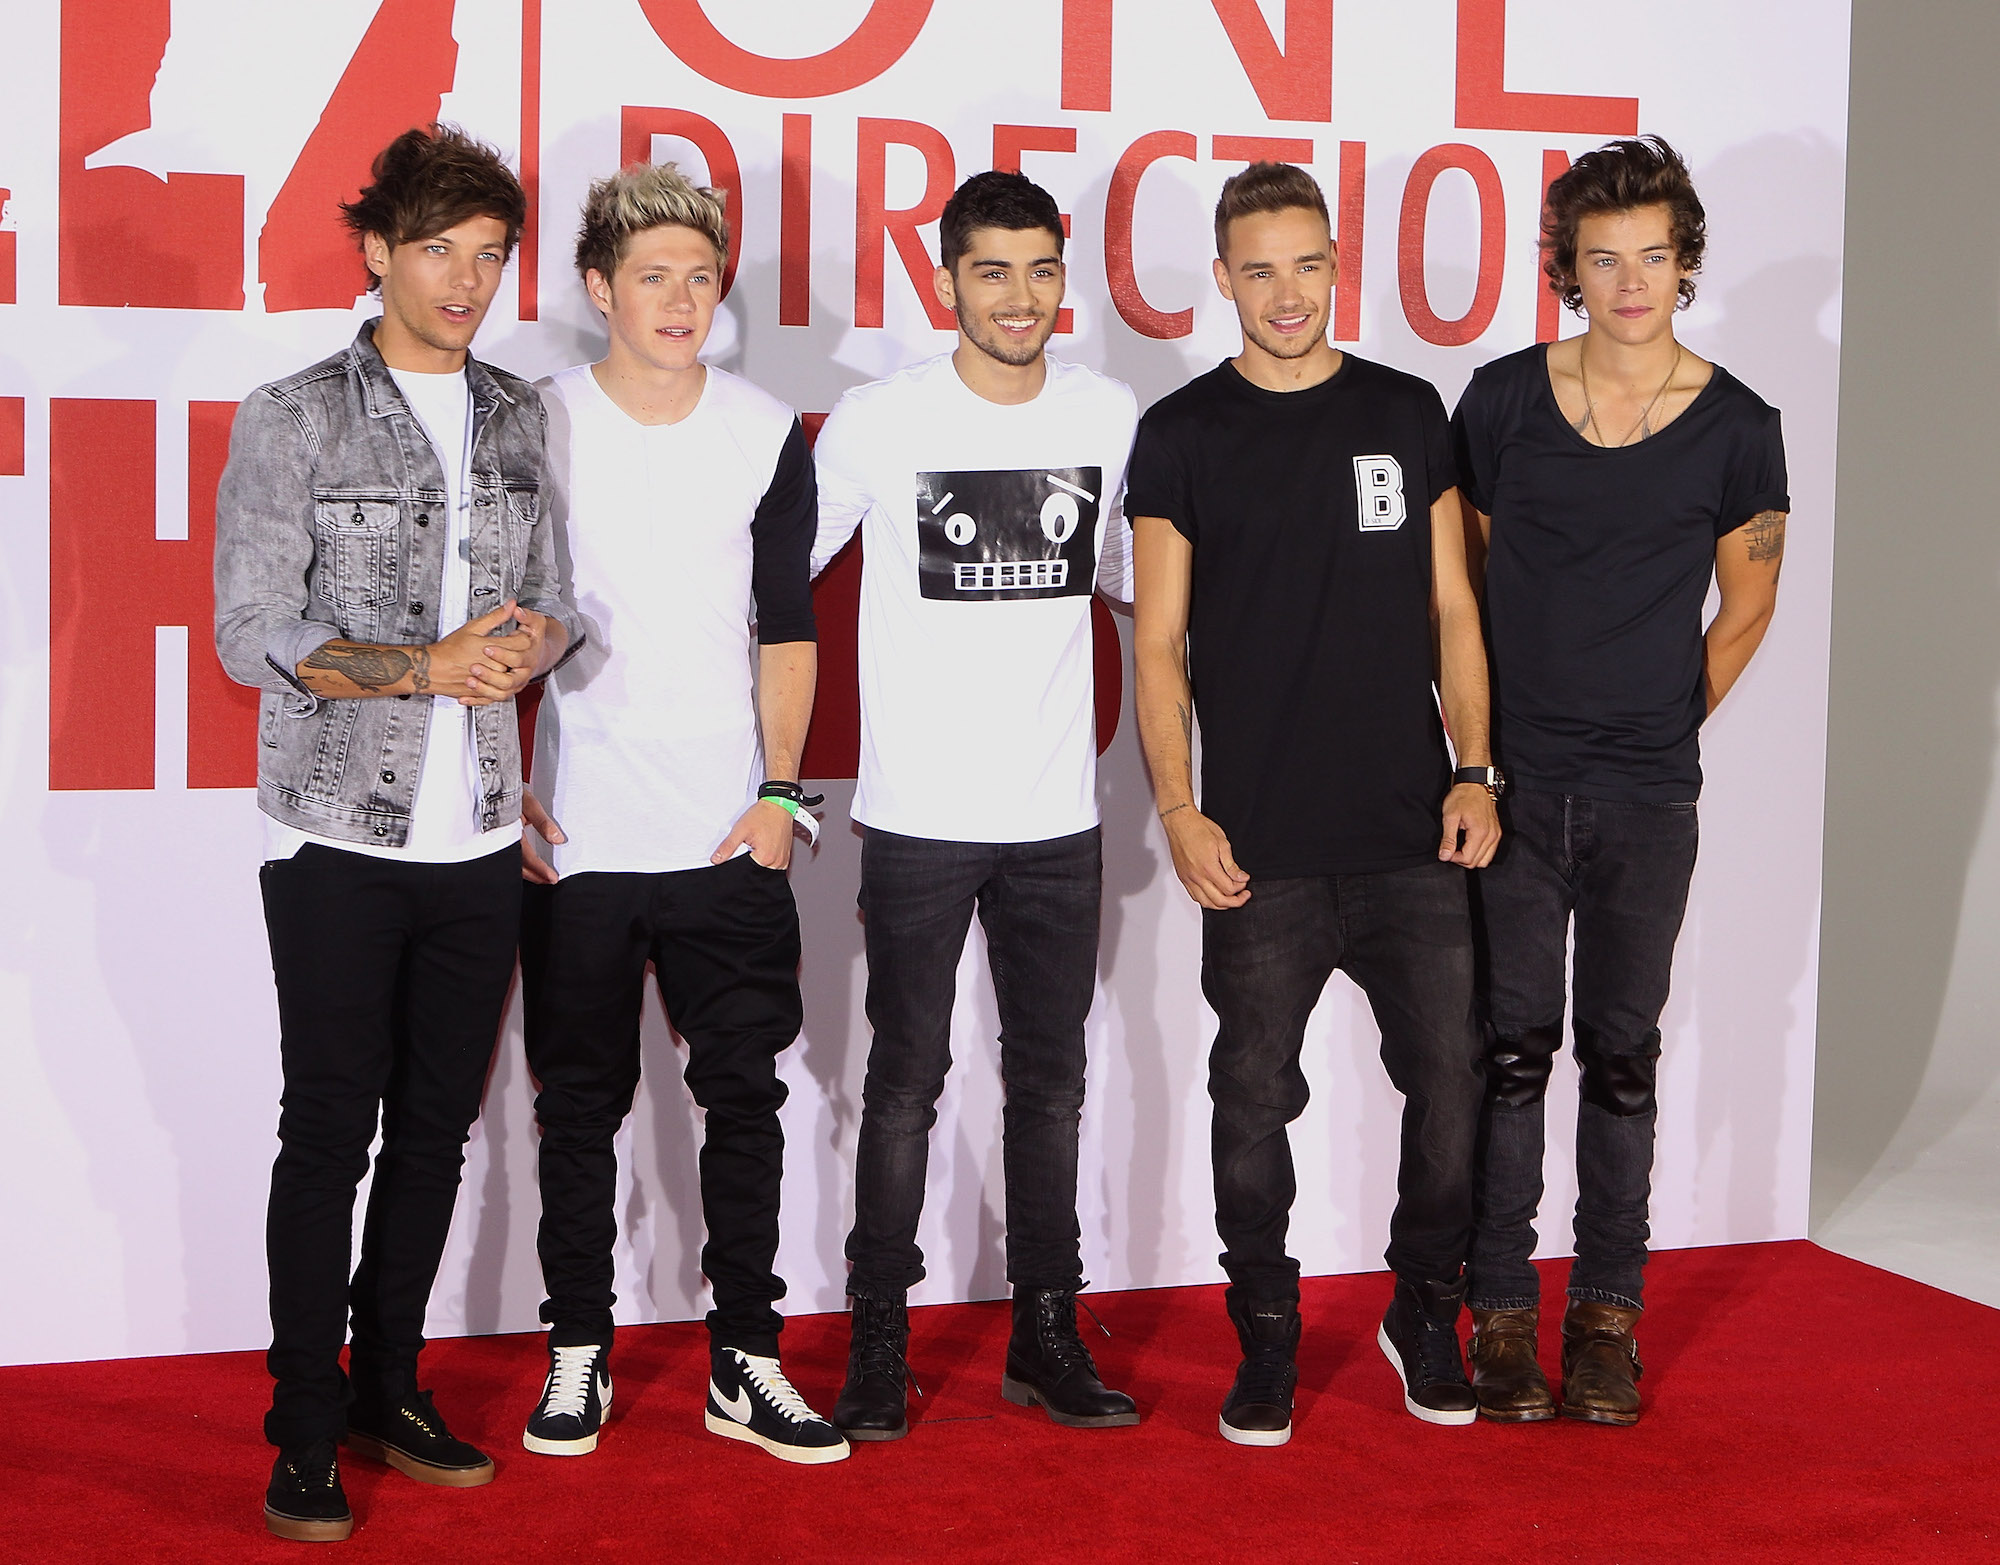 Louis Tomlinson, Niall Horan, Zayn Malik, Liam Payne, and Harry Styles of One Direction at a Photocall for their film 'This is Us' on Aug. 19, 2013